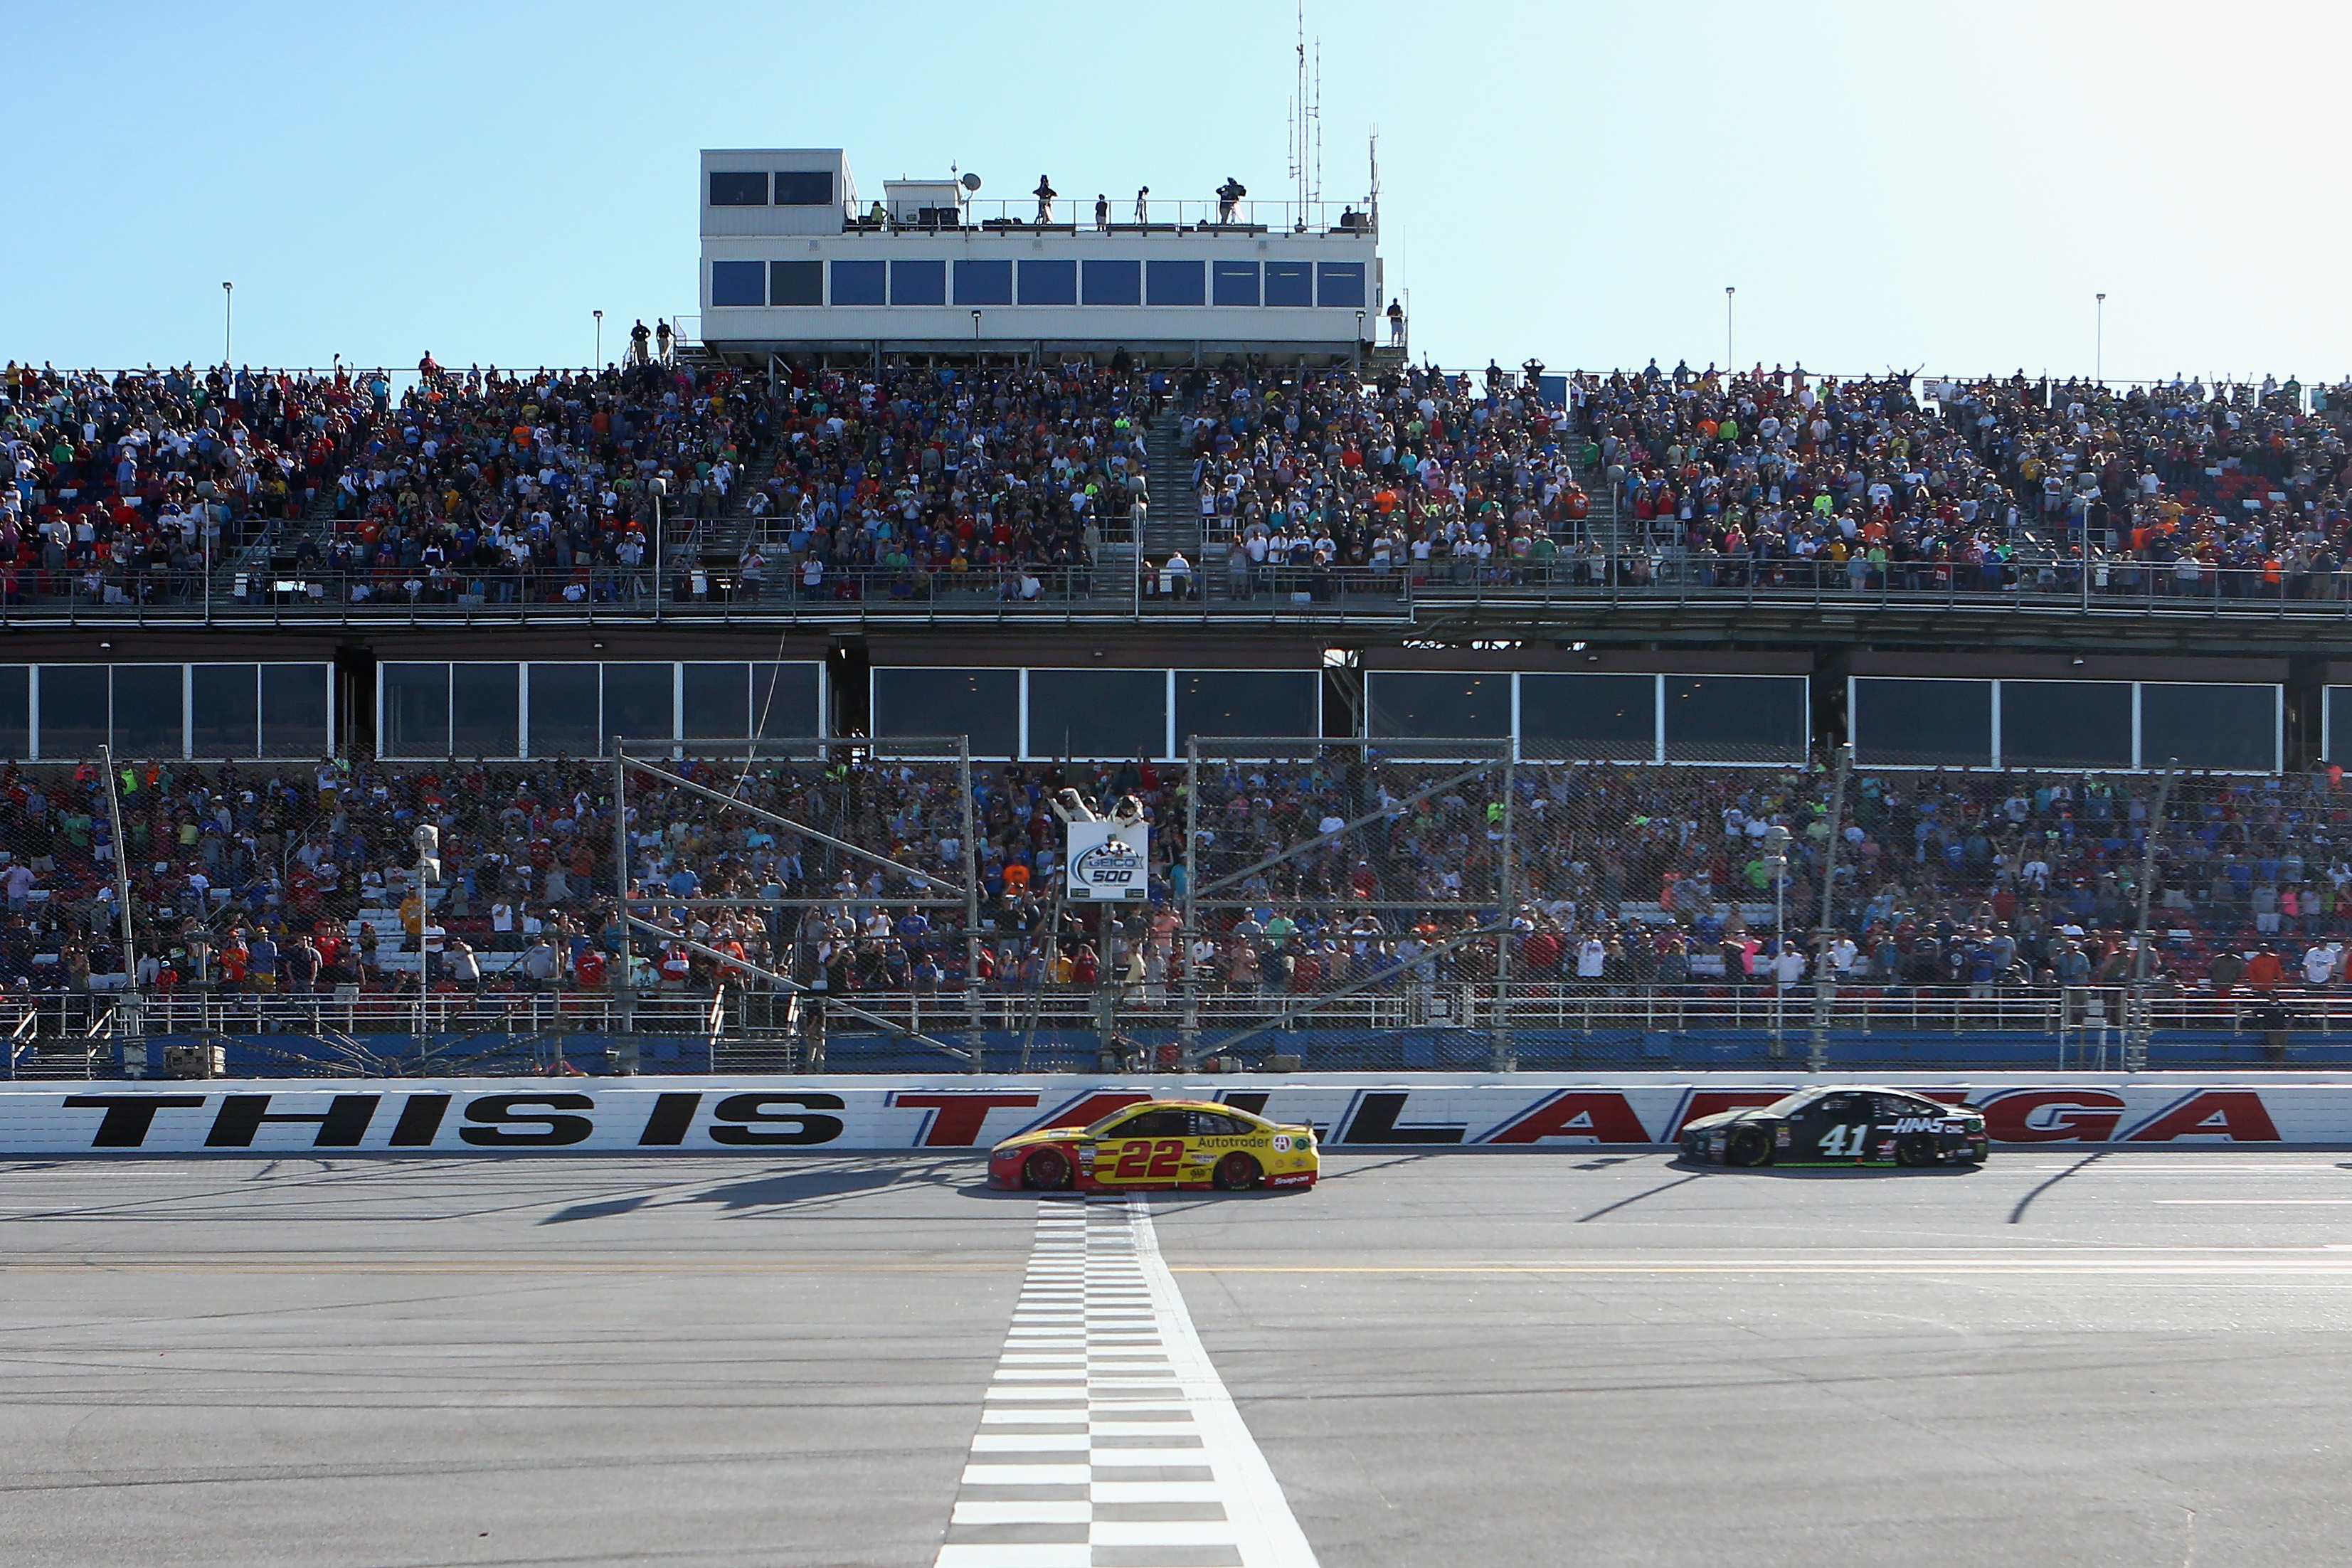 Joey Logano wins at Talladega Superspeedway